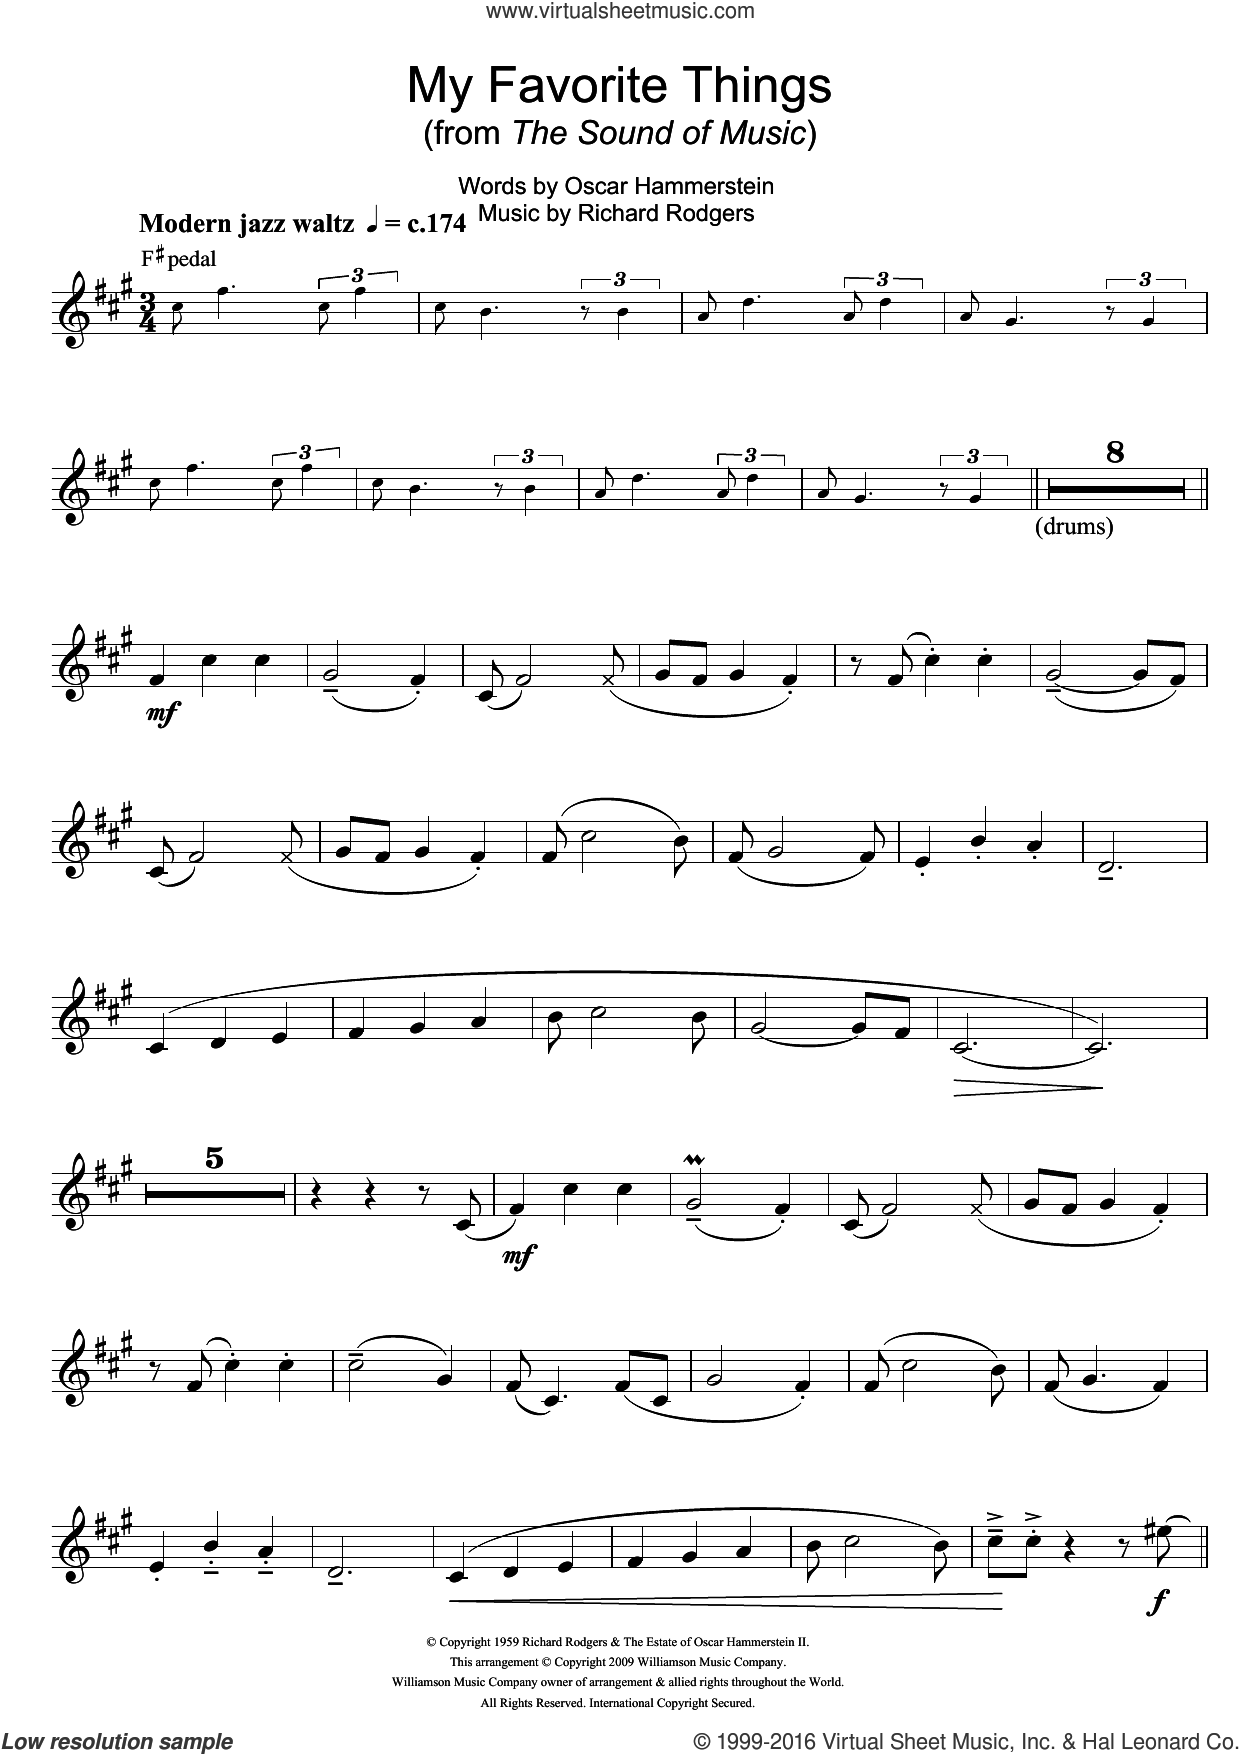 My Favorite Things (from The Sound Of Music) sheet music for trumpet solo by Rodgers & Hammerstein, Richard Rodgers and Oscar II Hammerstein, intermediate skill level